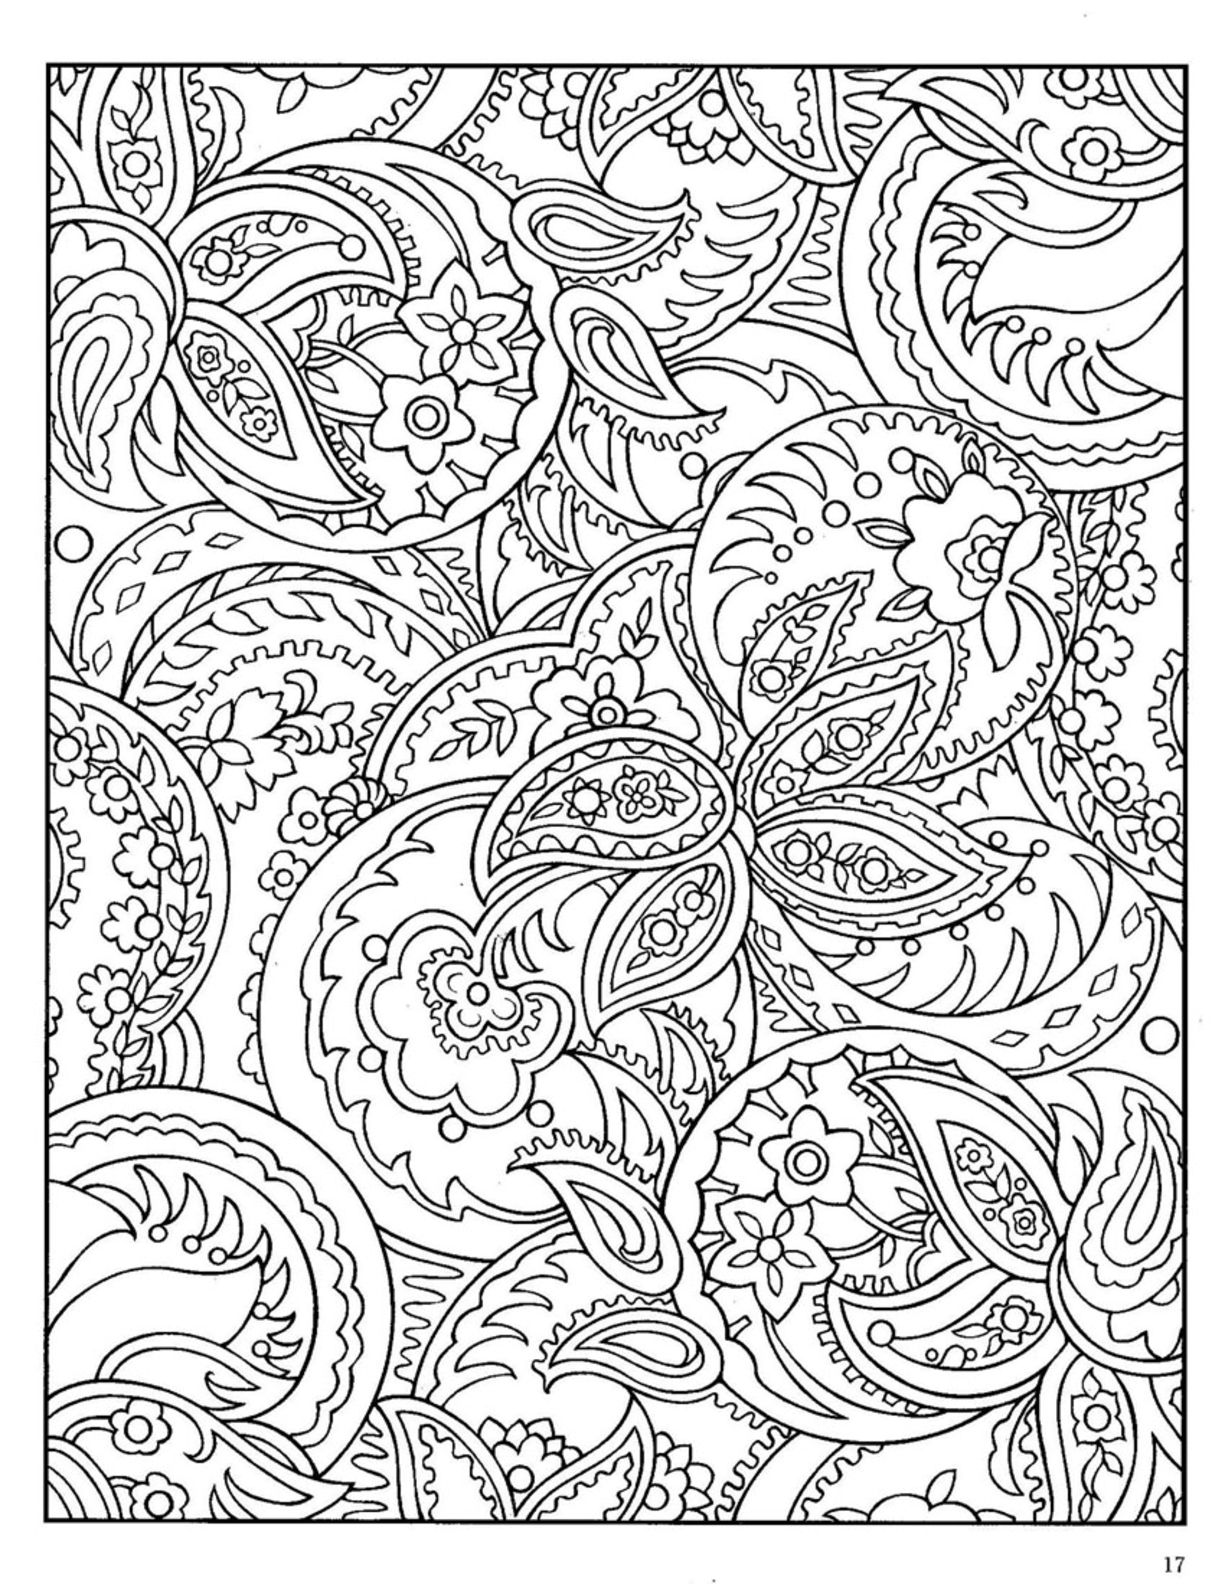 Dover Paisley Designs Coloring Book. If I finished this, I would ...